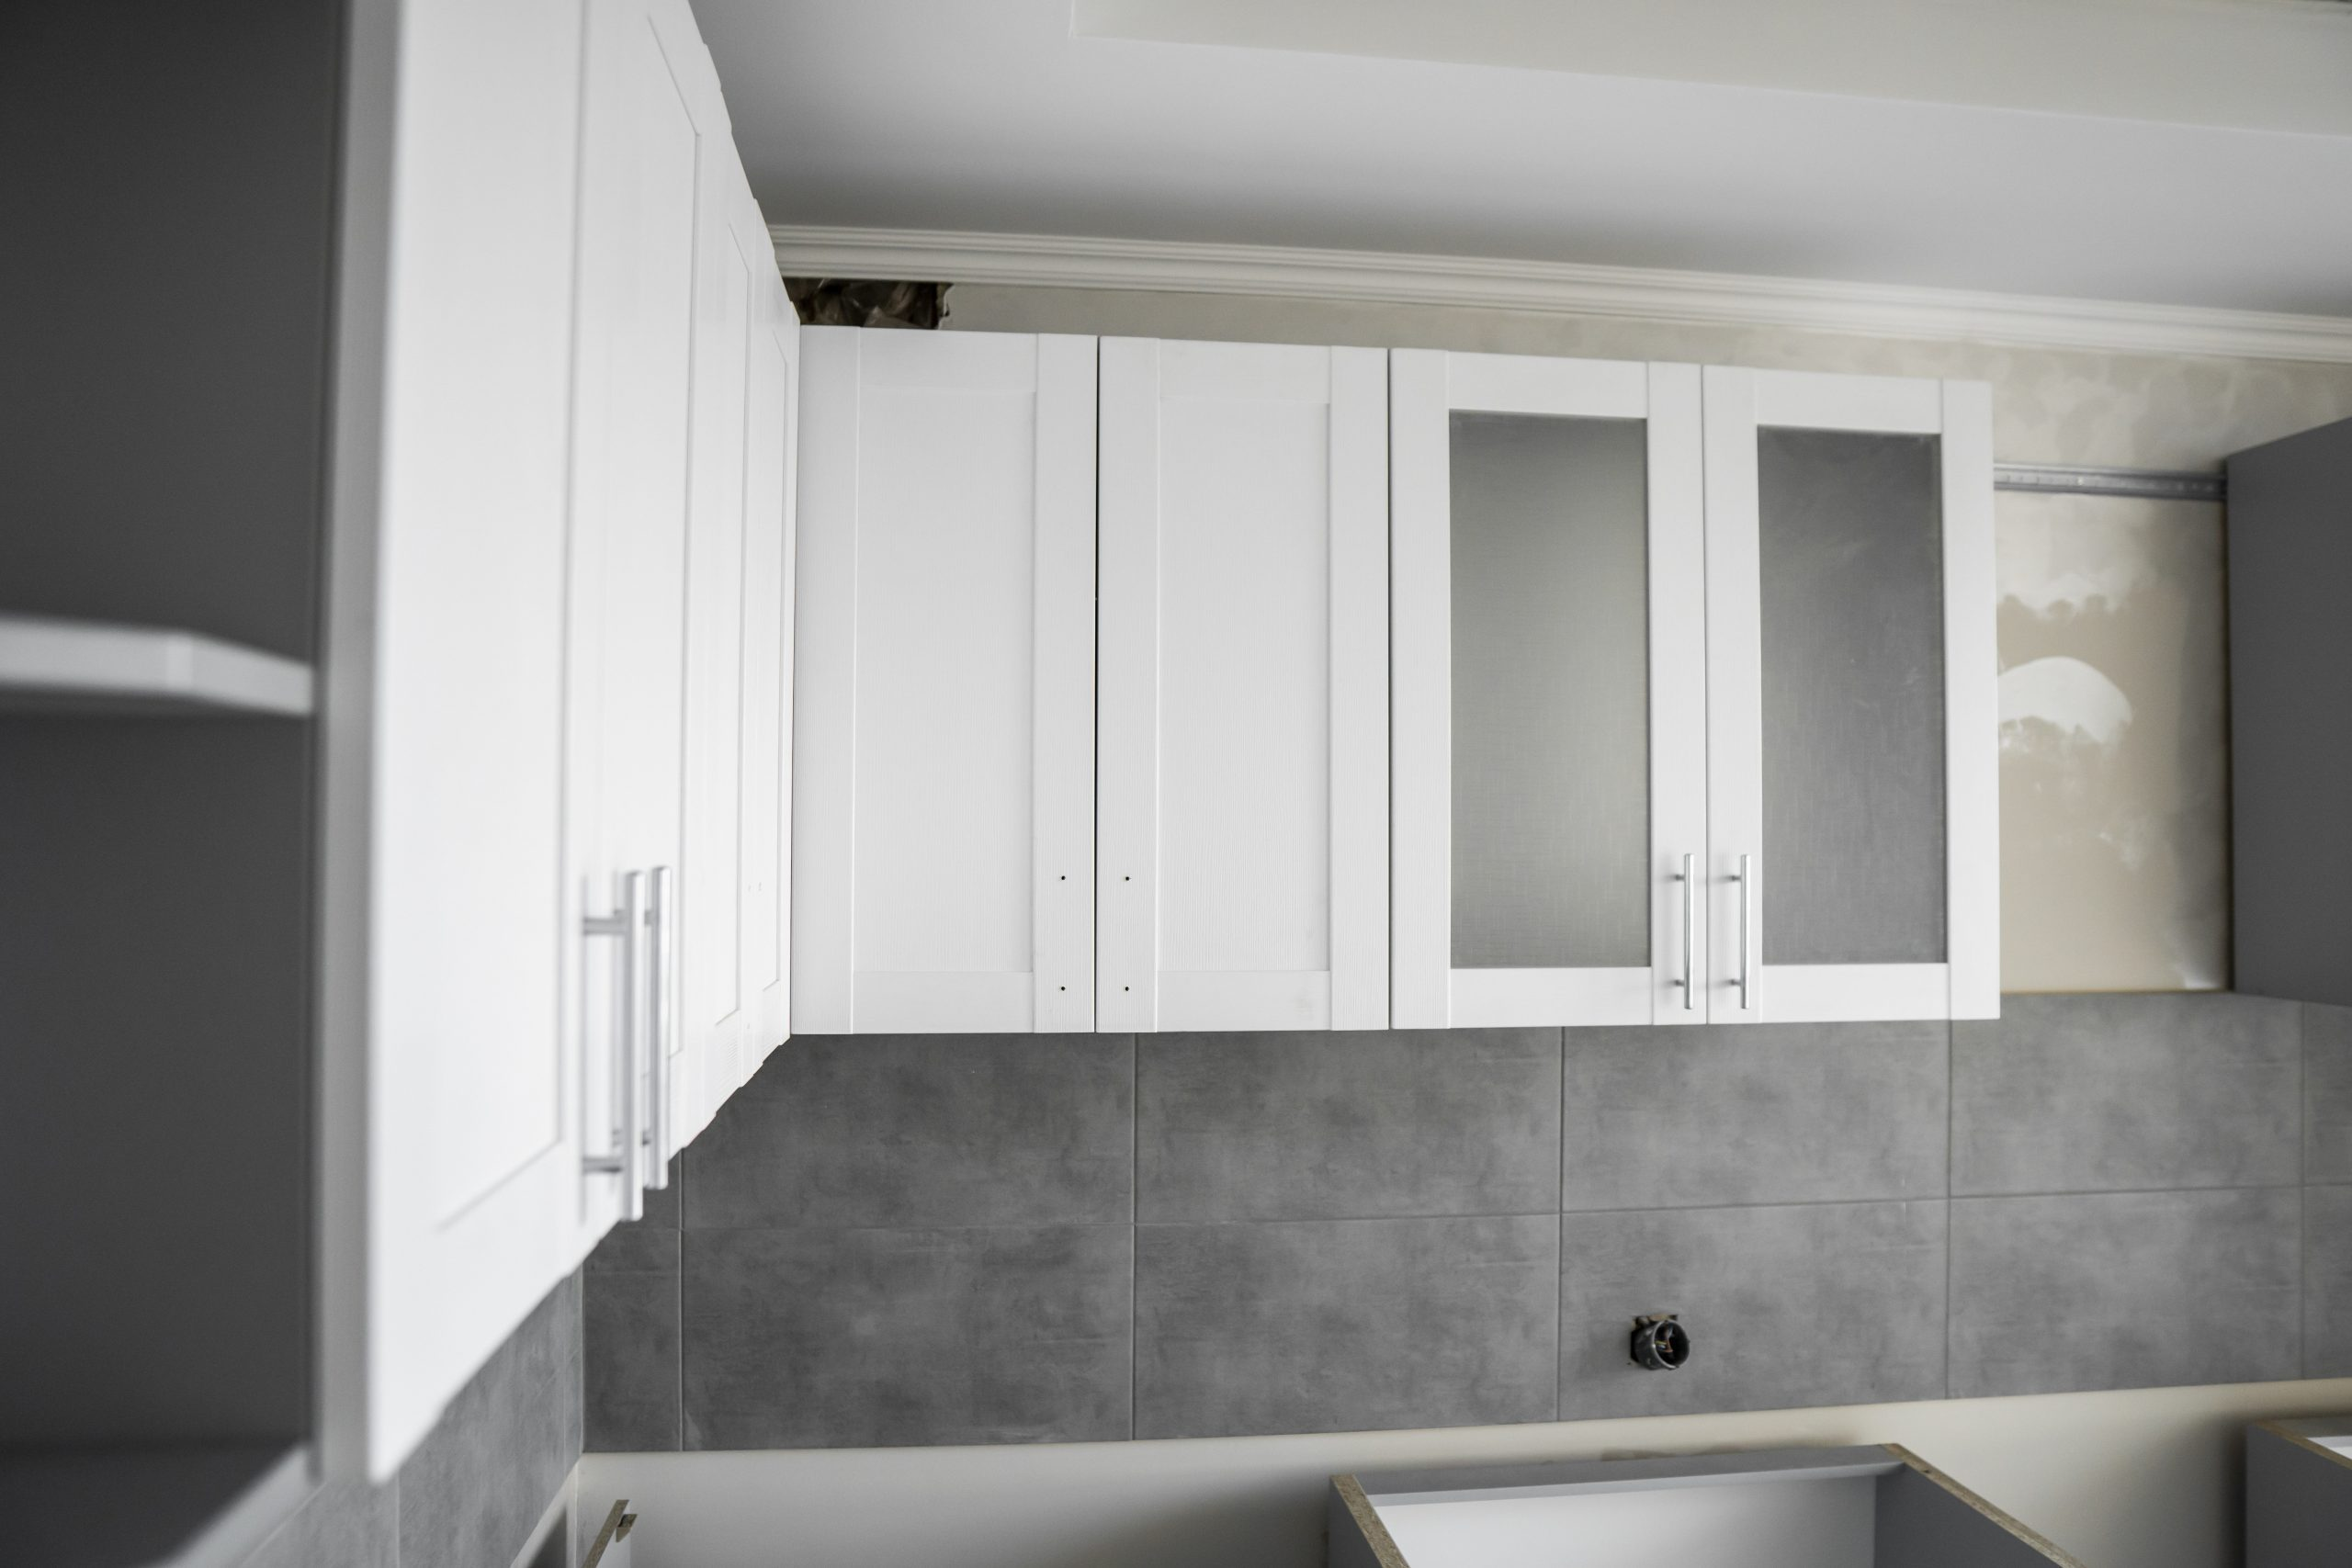 Custom kitchen cabinets installation with a white furniture, gray modular kitchen from chipboard material on a various stages of installation.